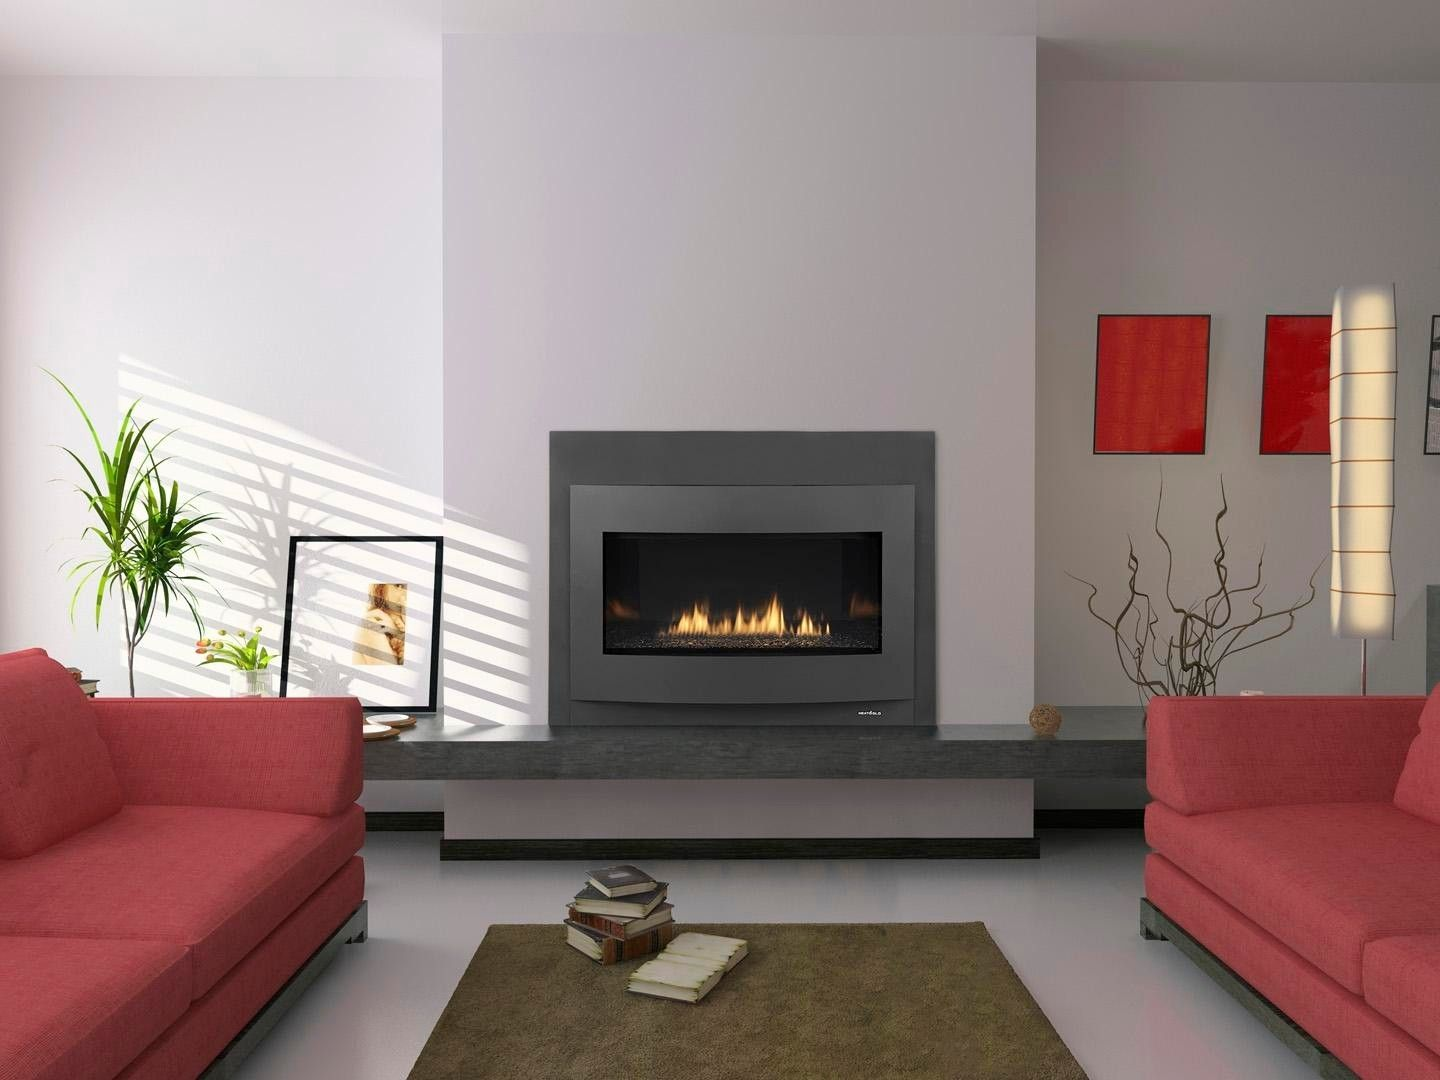 Contemporary Fireplace Designs Image By Susan White On My House Fireplace Contemporary Gas Fireplace Gas Fireplace Insert